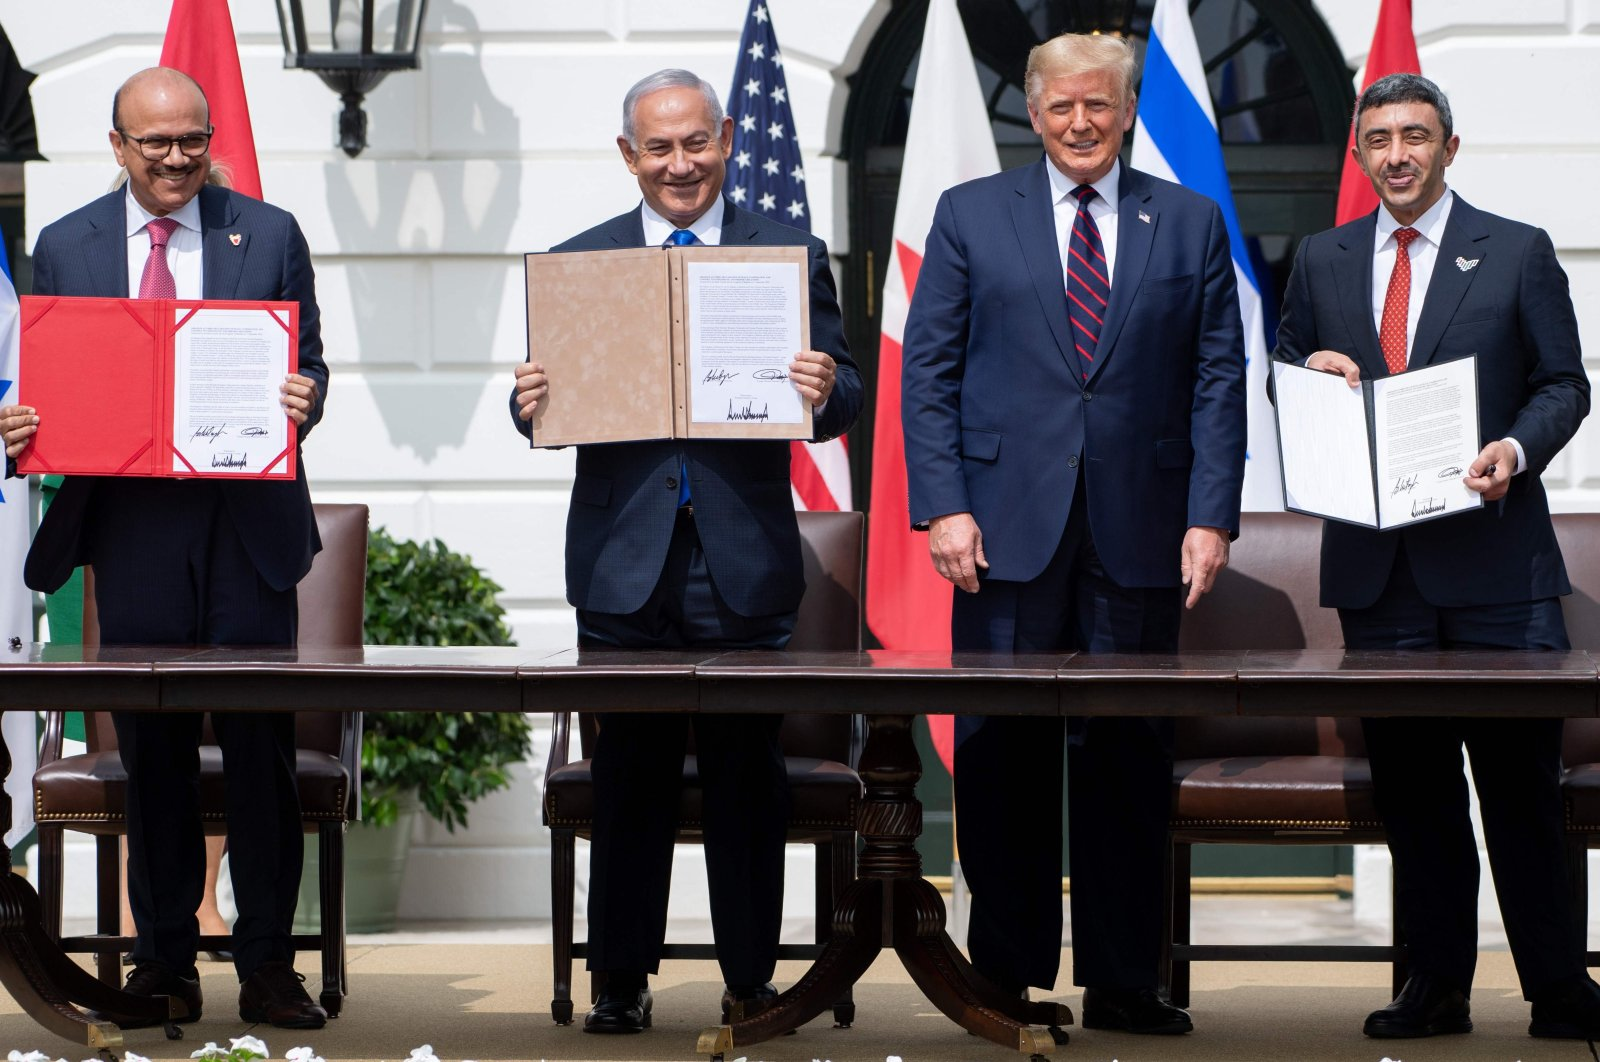 (L-R)Bahrain Foreign Minister Abdullatif al-Zayani, Israeli Prime Minister Benjamin Netanyahu, U.S. President Donald Trump and UAE Foreign Minister Abdullah bin Zayed al-Nahyan hold up documents after participating in the signing of the Abraham Accords where the countries of Bahrain and the UAE recognize Israel, at the White House in Washington, D.C., Sept. 15, 2020. (AFP Photo)